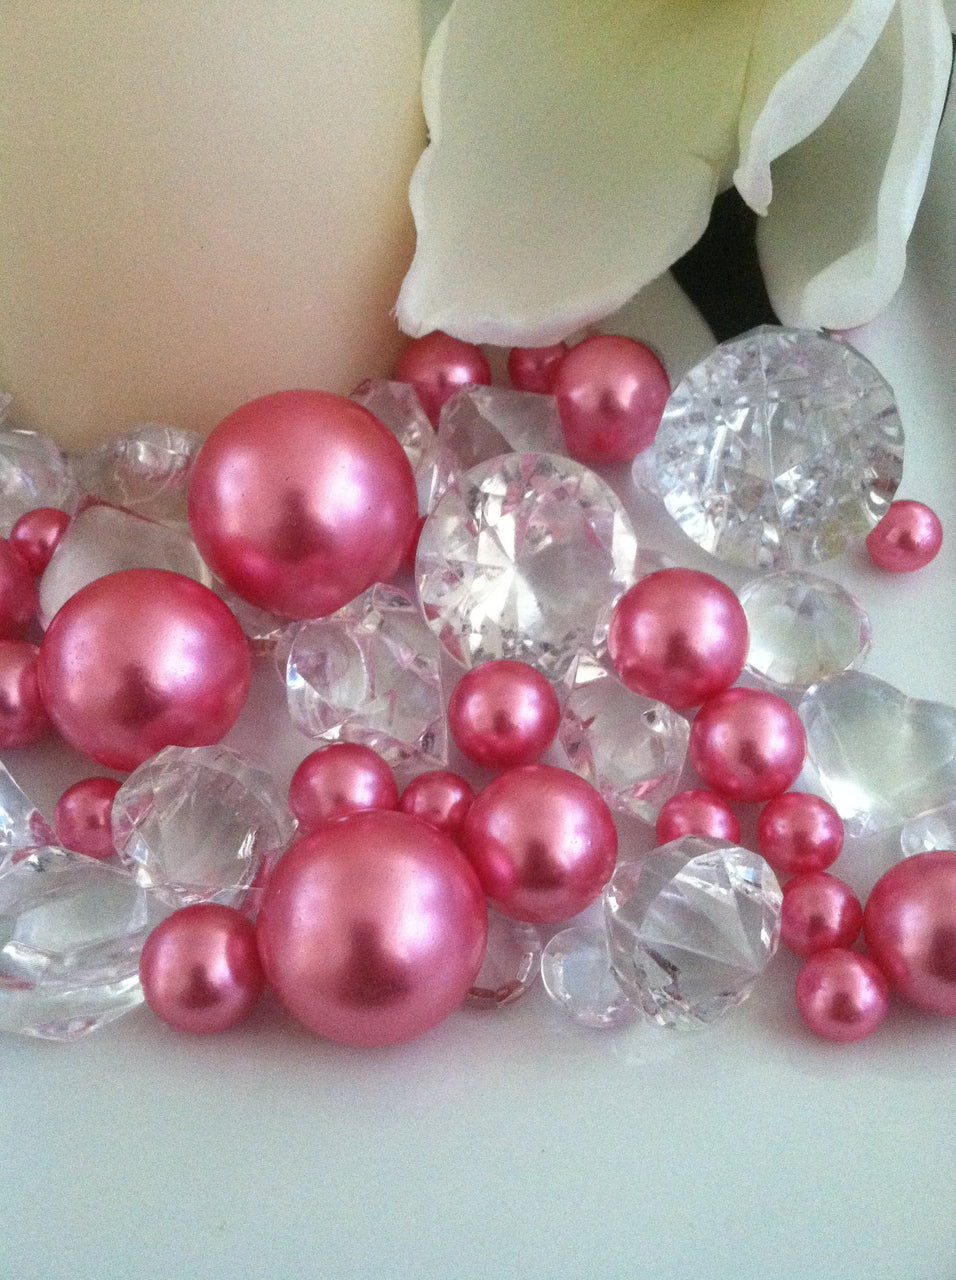 Pearl and Diamond Table Scatter/Confetti, 80pcs Pink Pearls & Clear Diamond Gem Mix, Vase Fillers